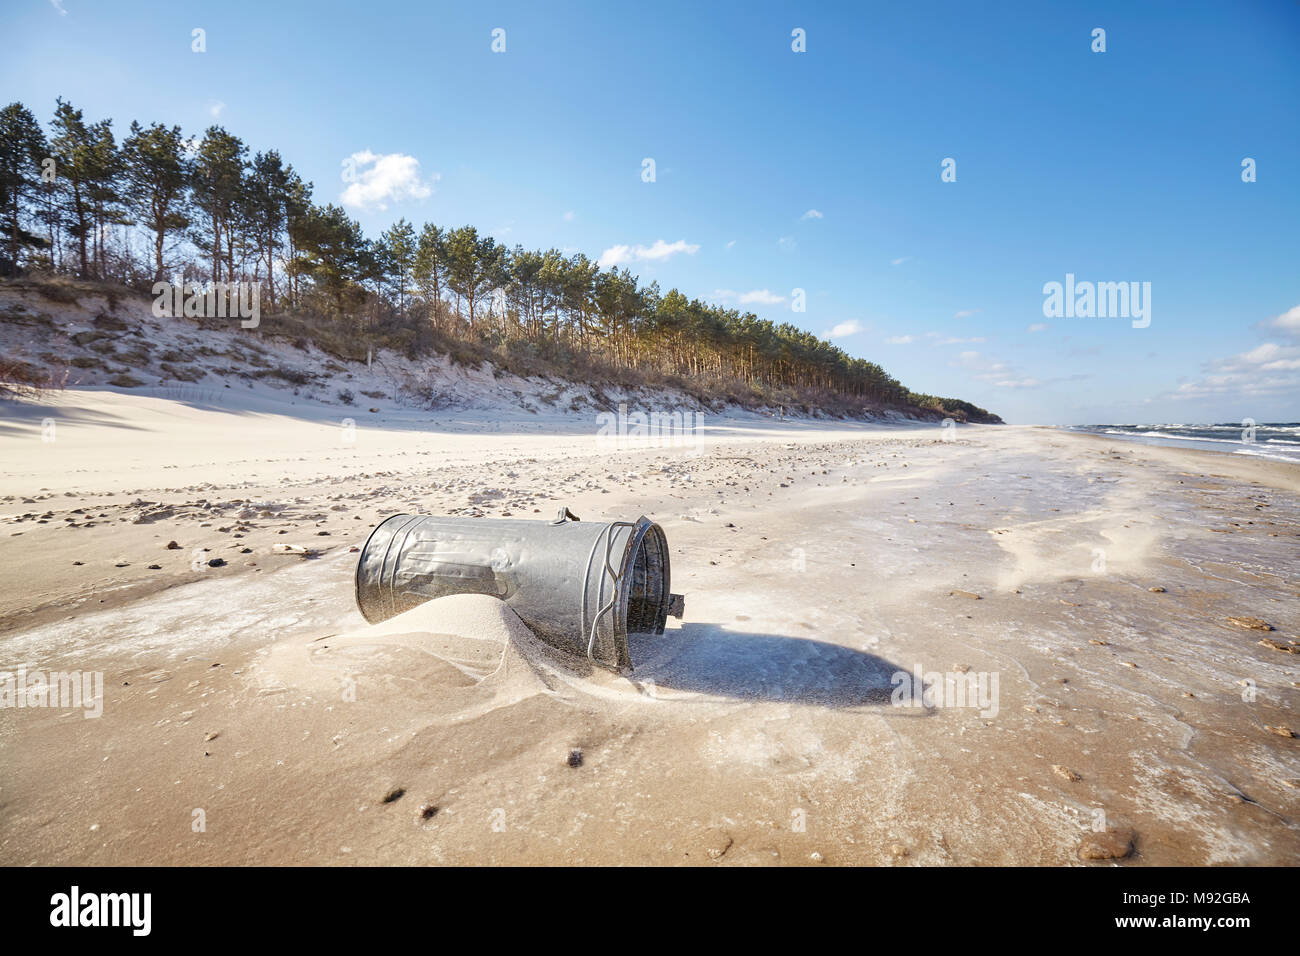 Old trash can on a beach, environmental pollution concept. - Stock Image